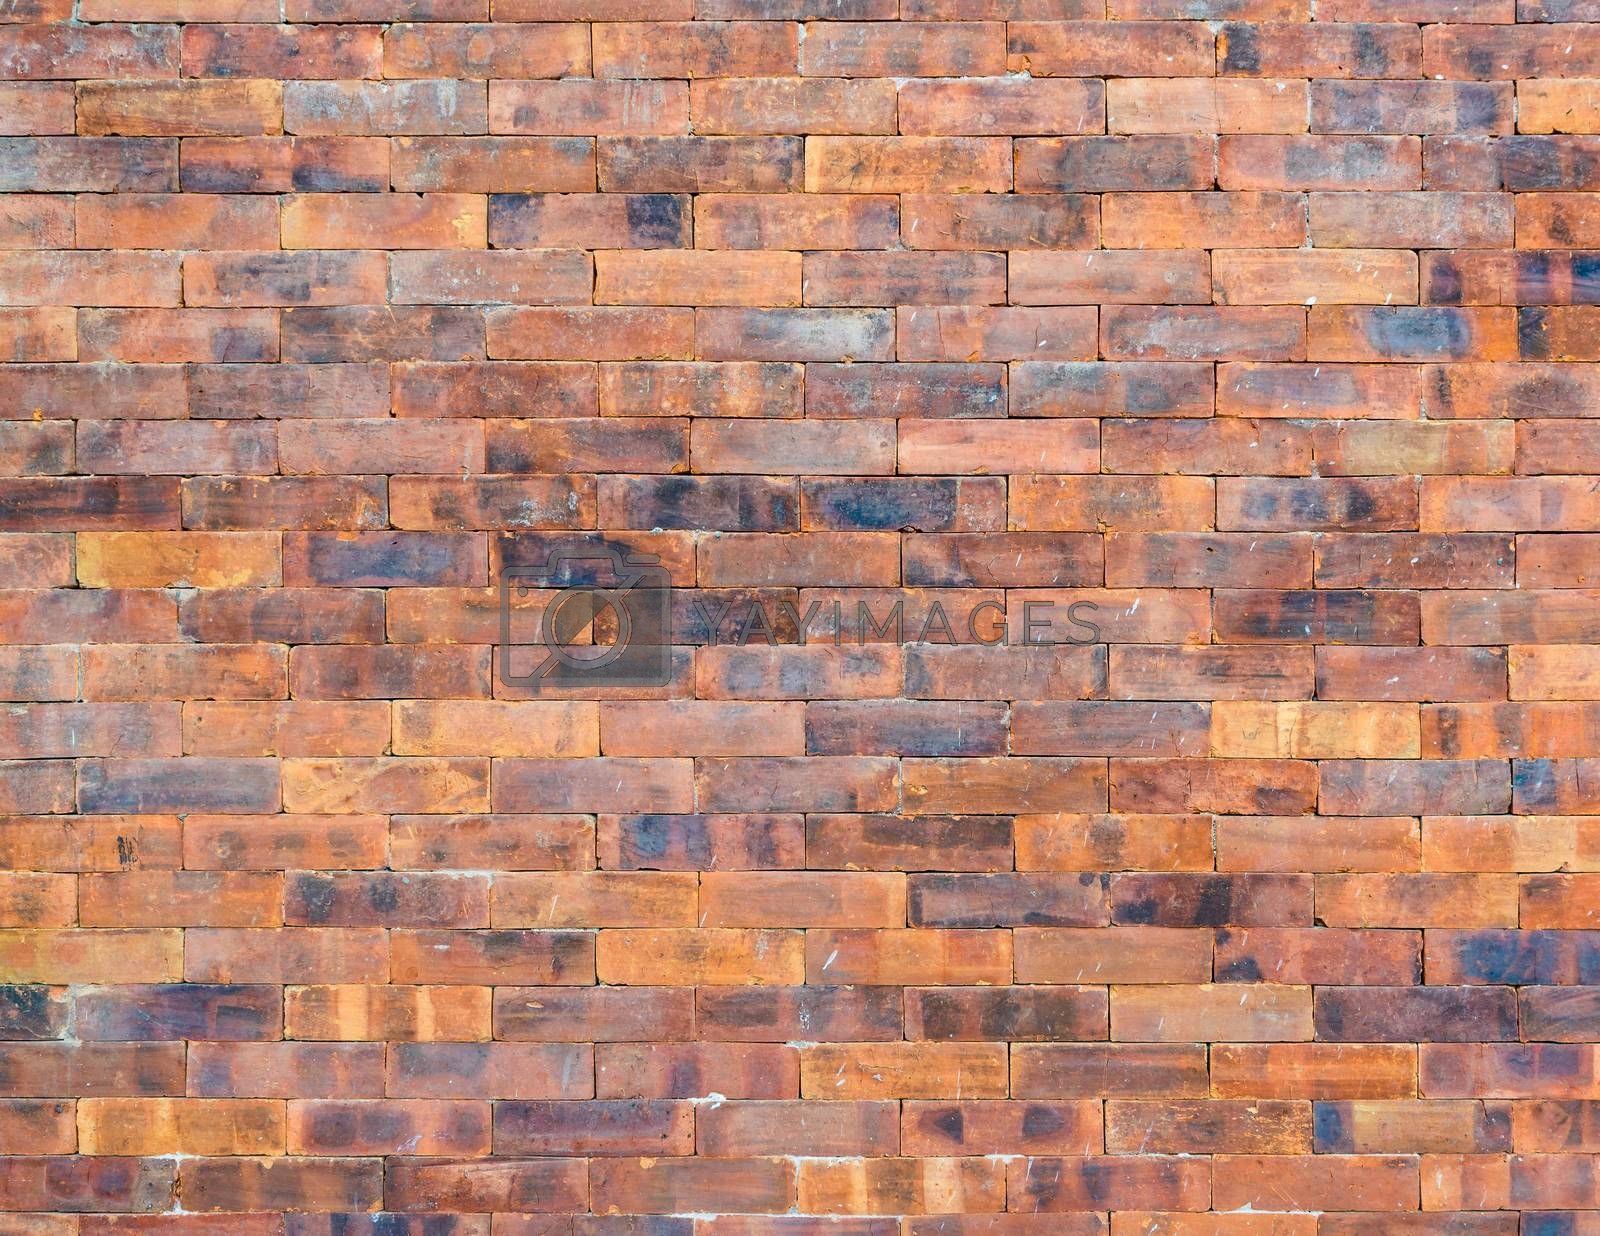 Typical Nepalese jointless brick wall texture